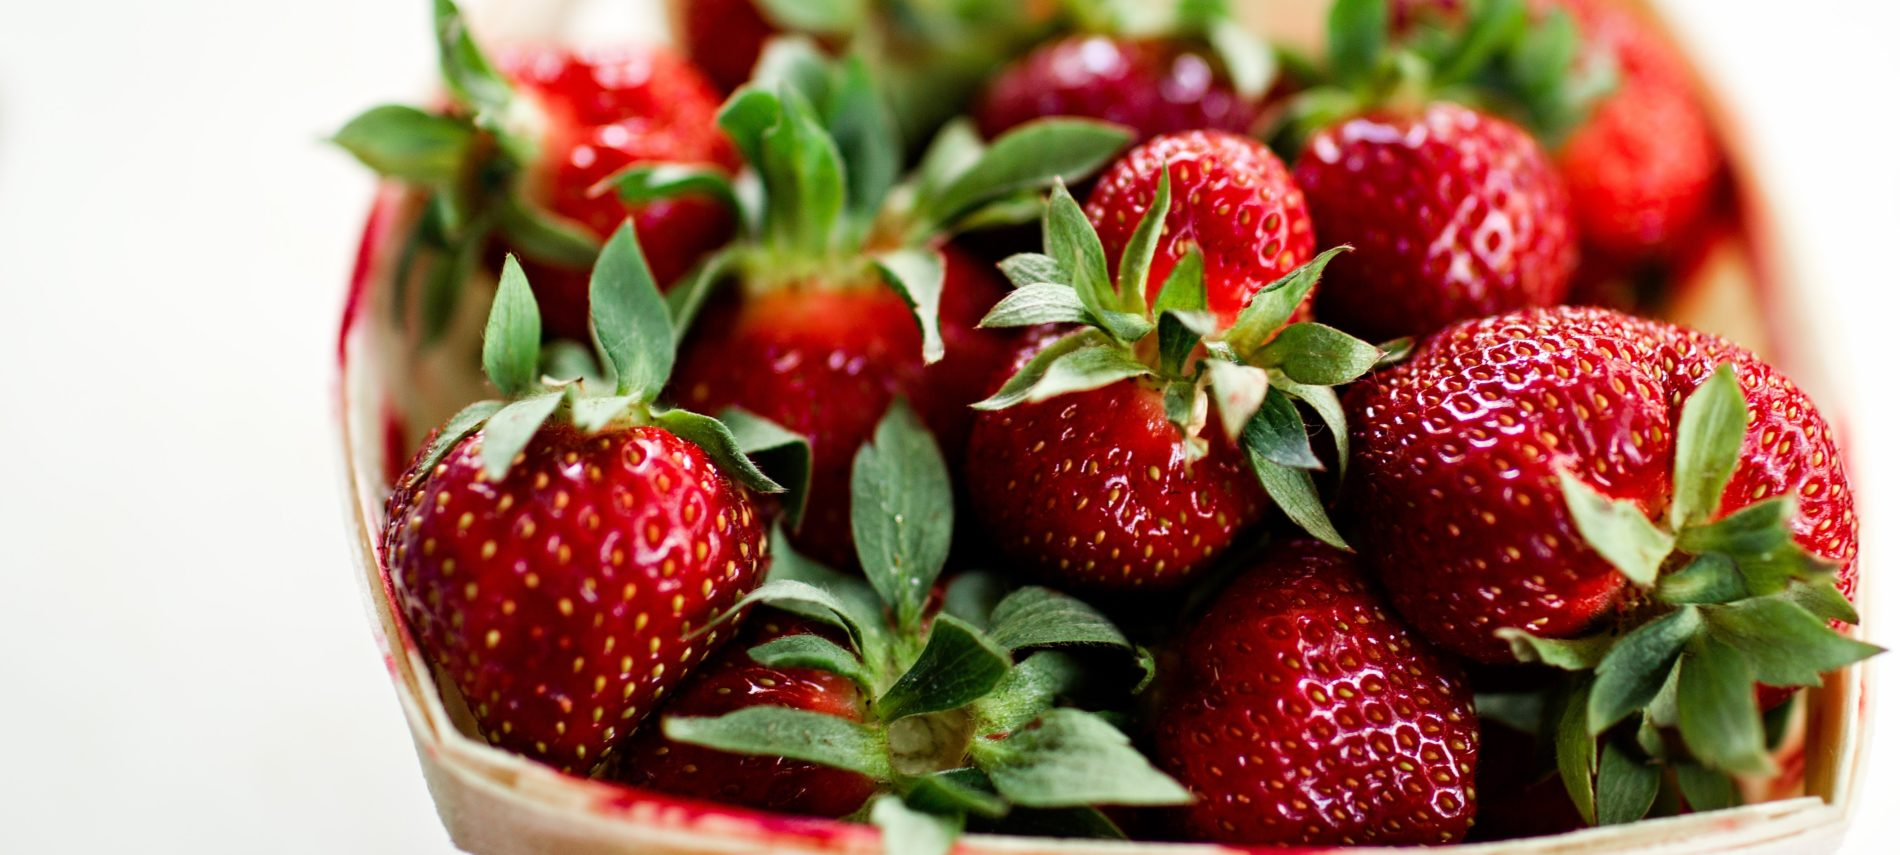 Basket of fresh strawberries.